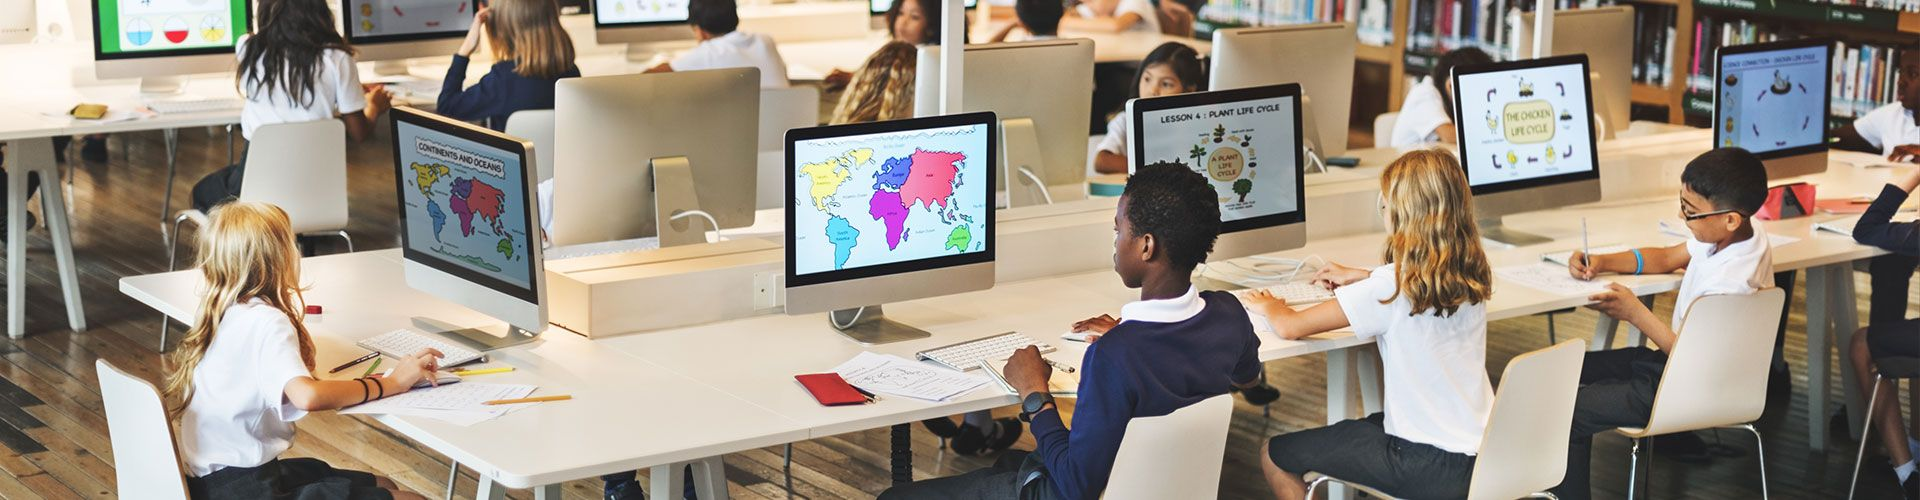 Students using technology in the classrooms of the Vail School District can be more productive thanks to Intermapper network monitoring software